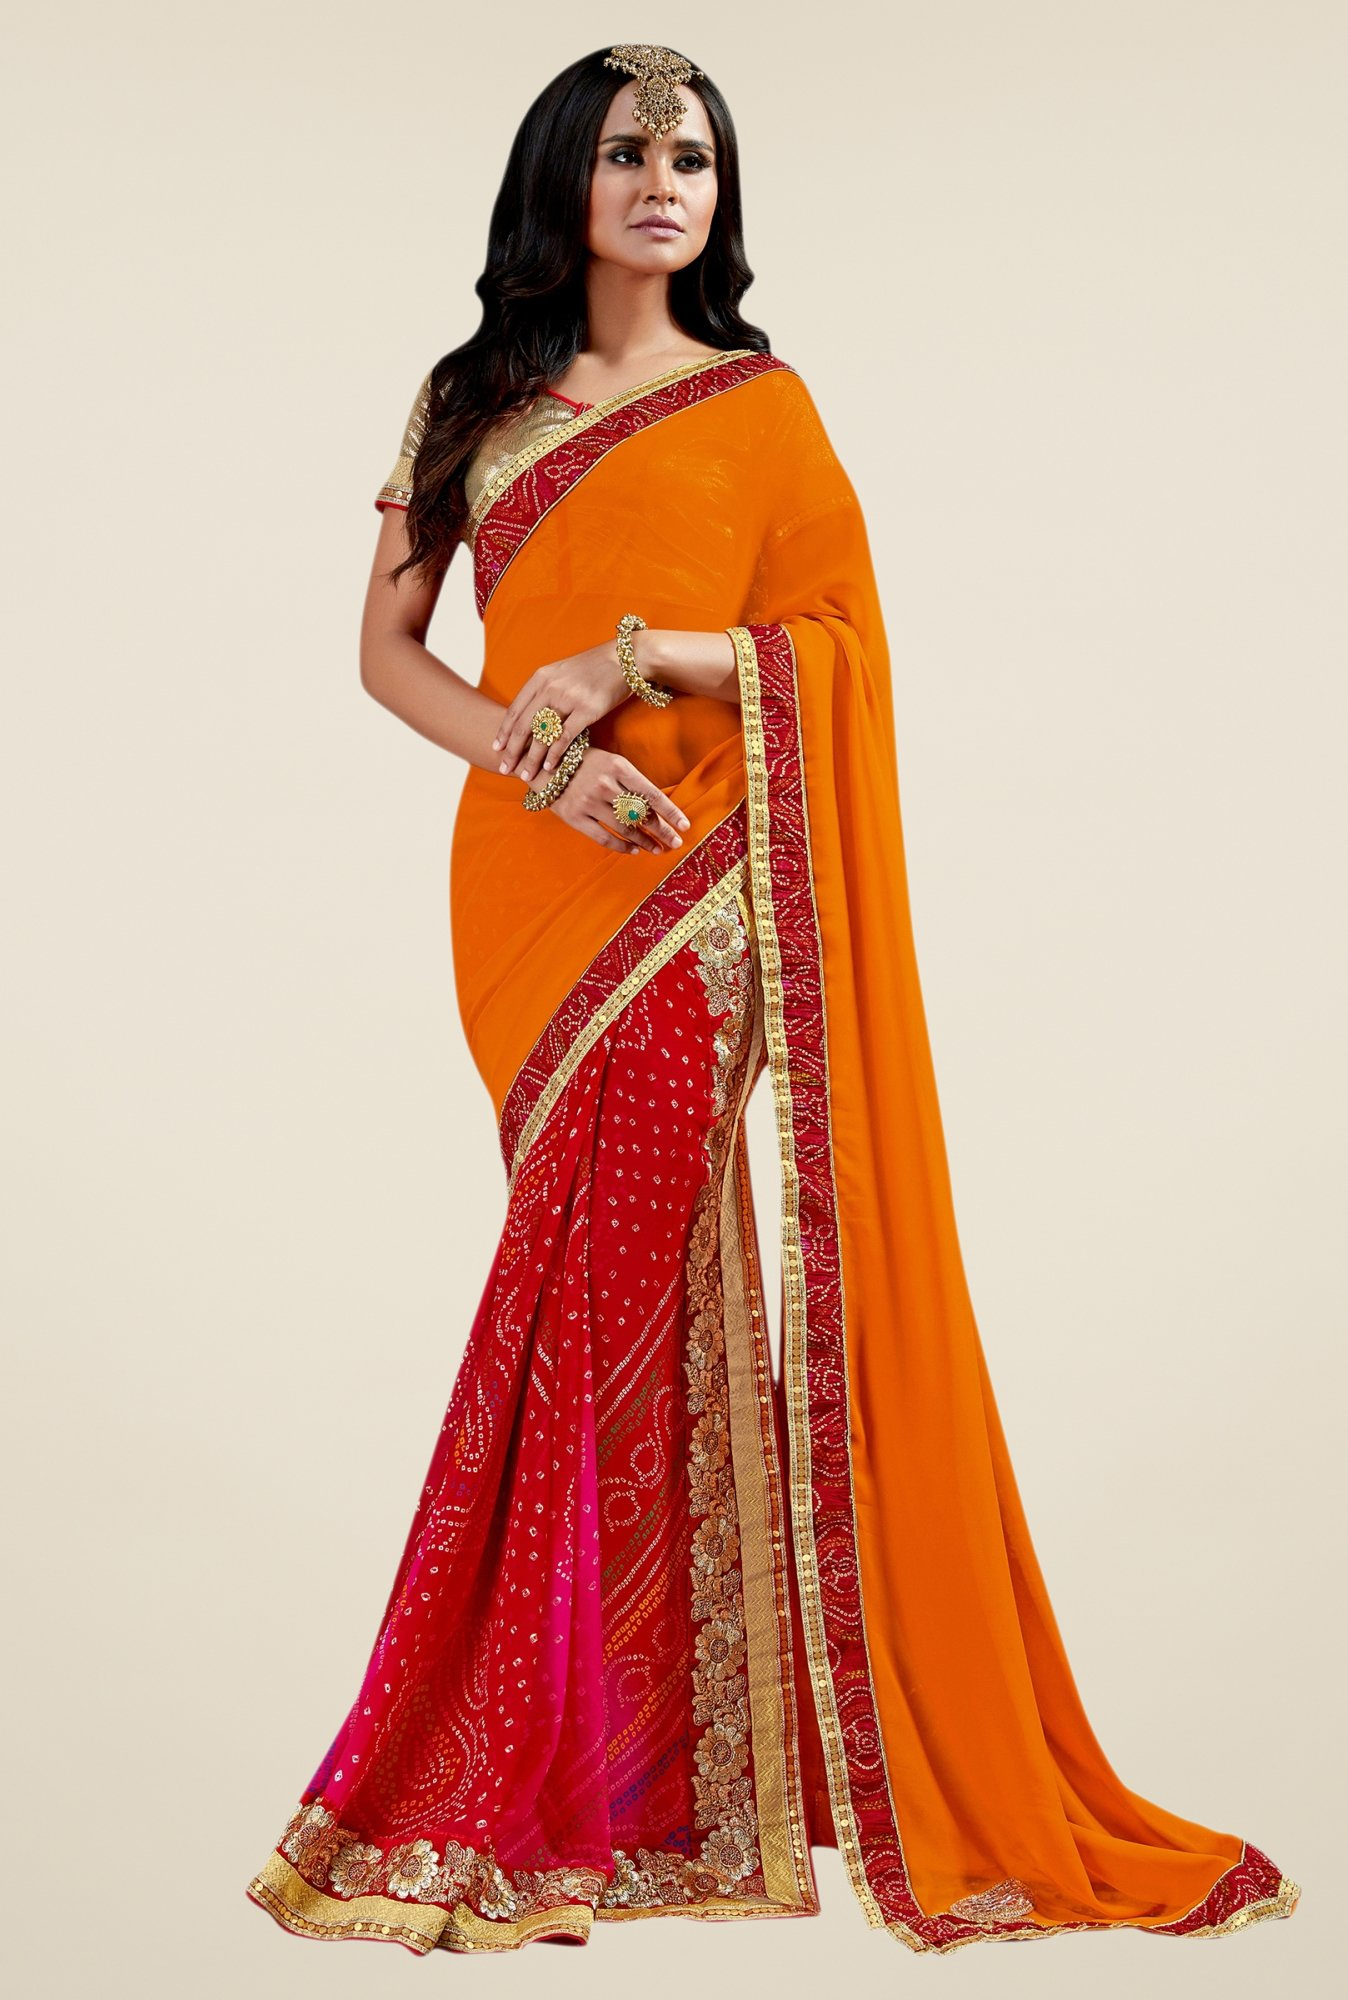 Triveni Astounding Red & Orange Faux Georgette Saree